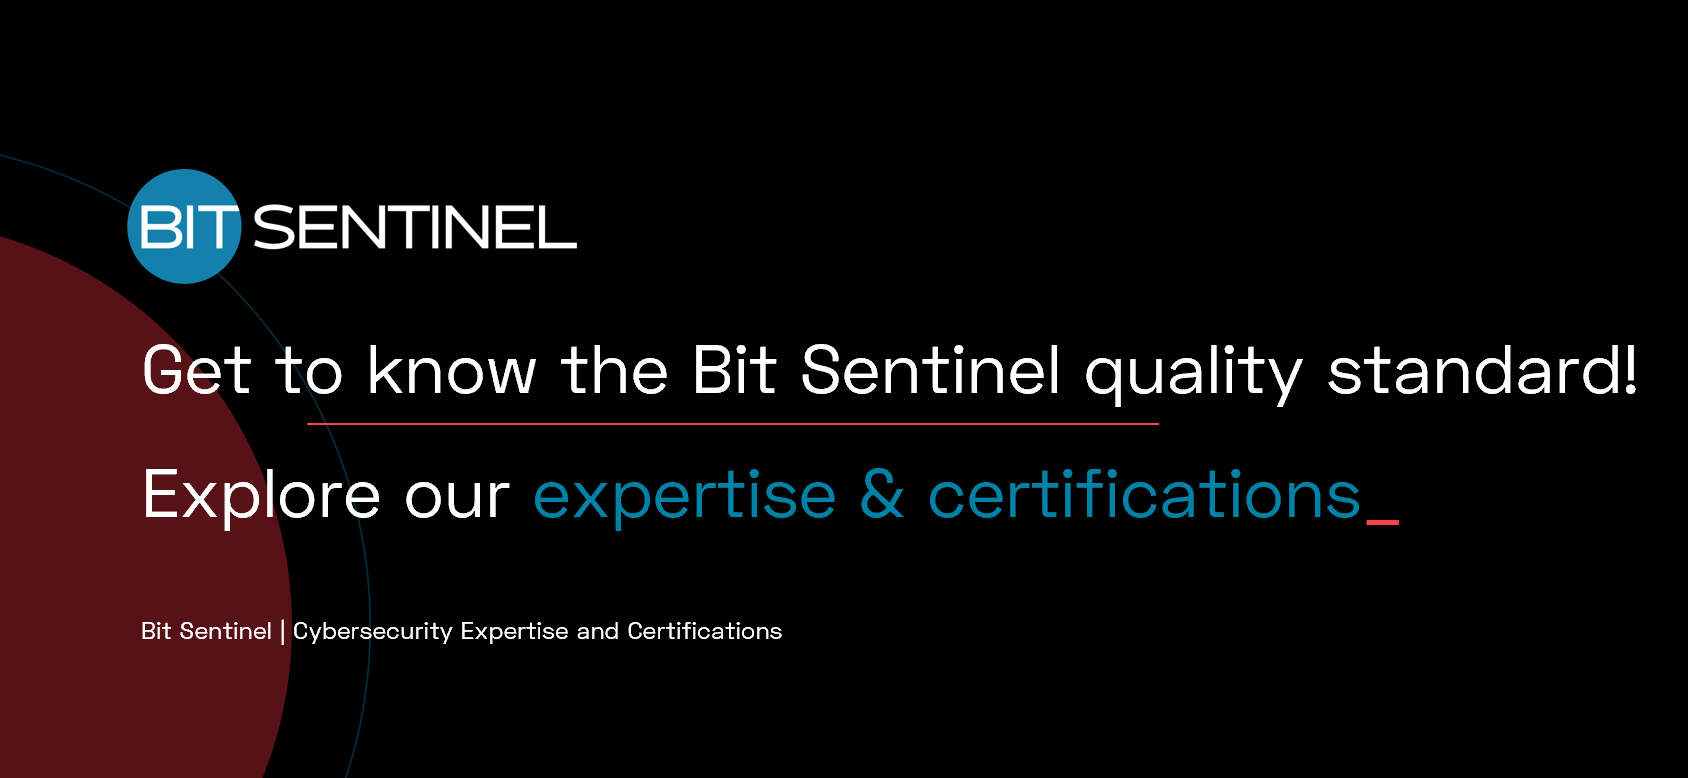 Cybersecurity Expertise and Certifications | Bit Sentinel